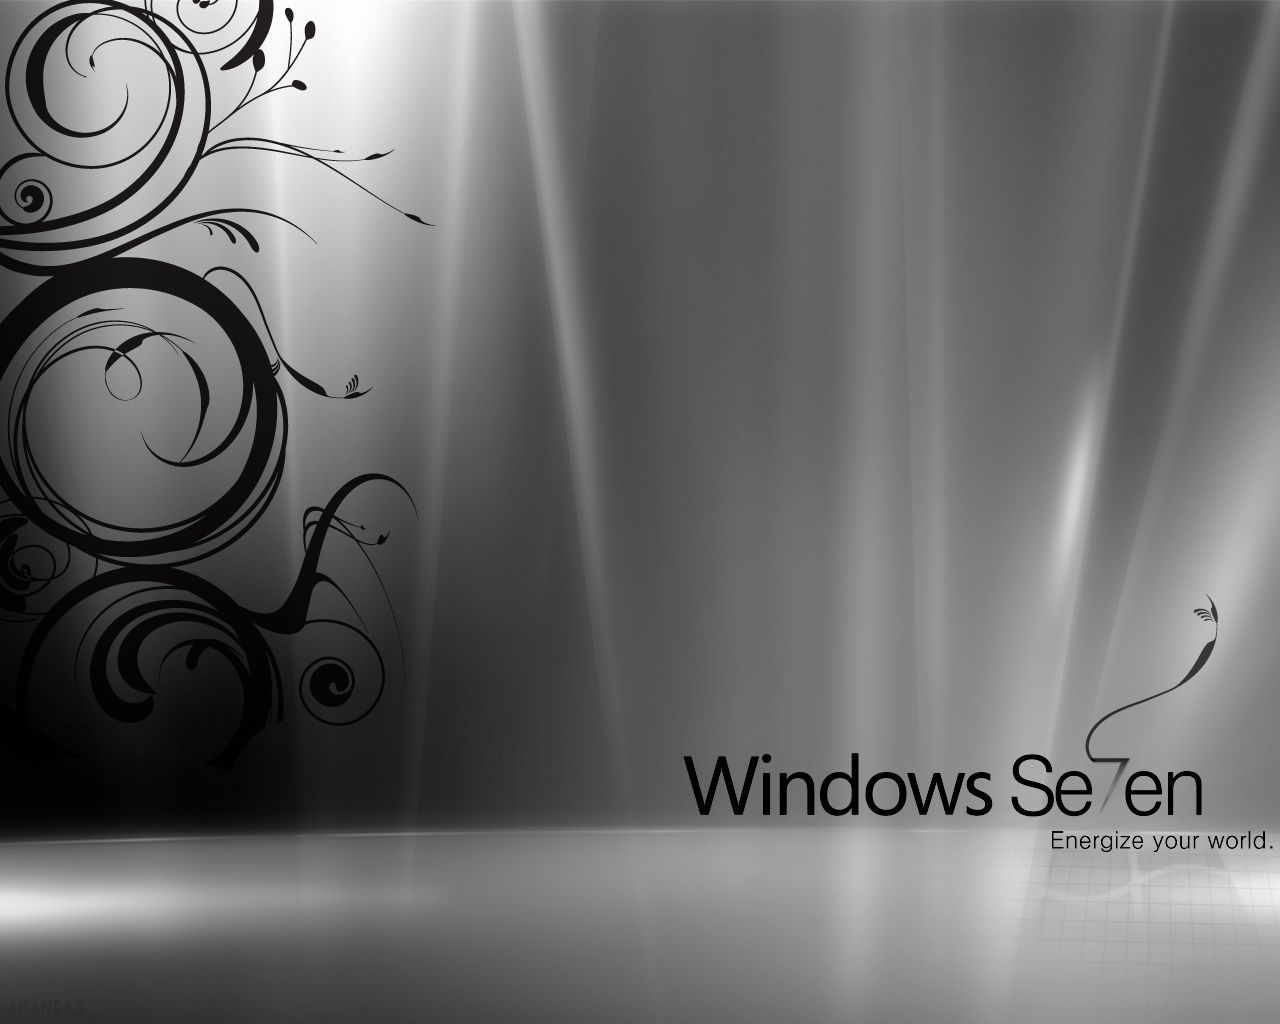 cool hd wallpapers: windows wallpapers download | epic car